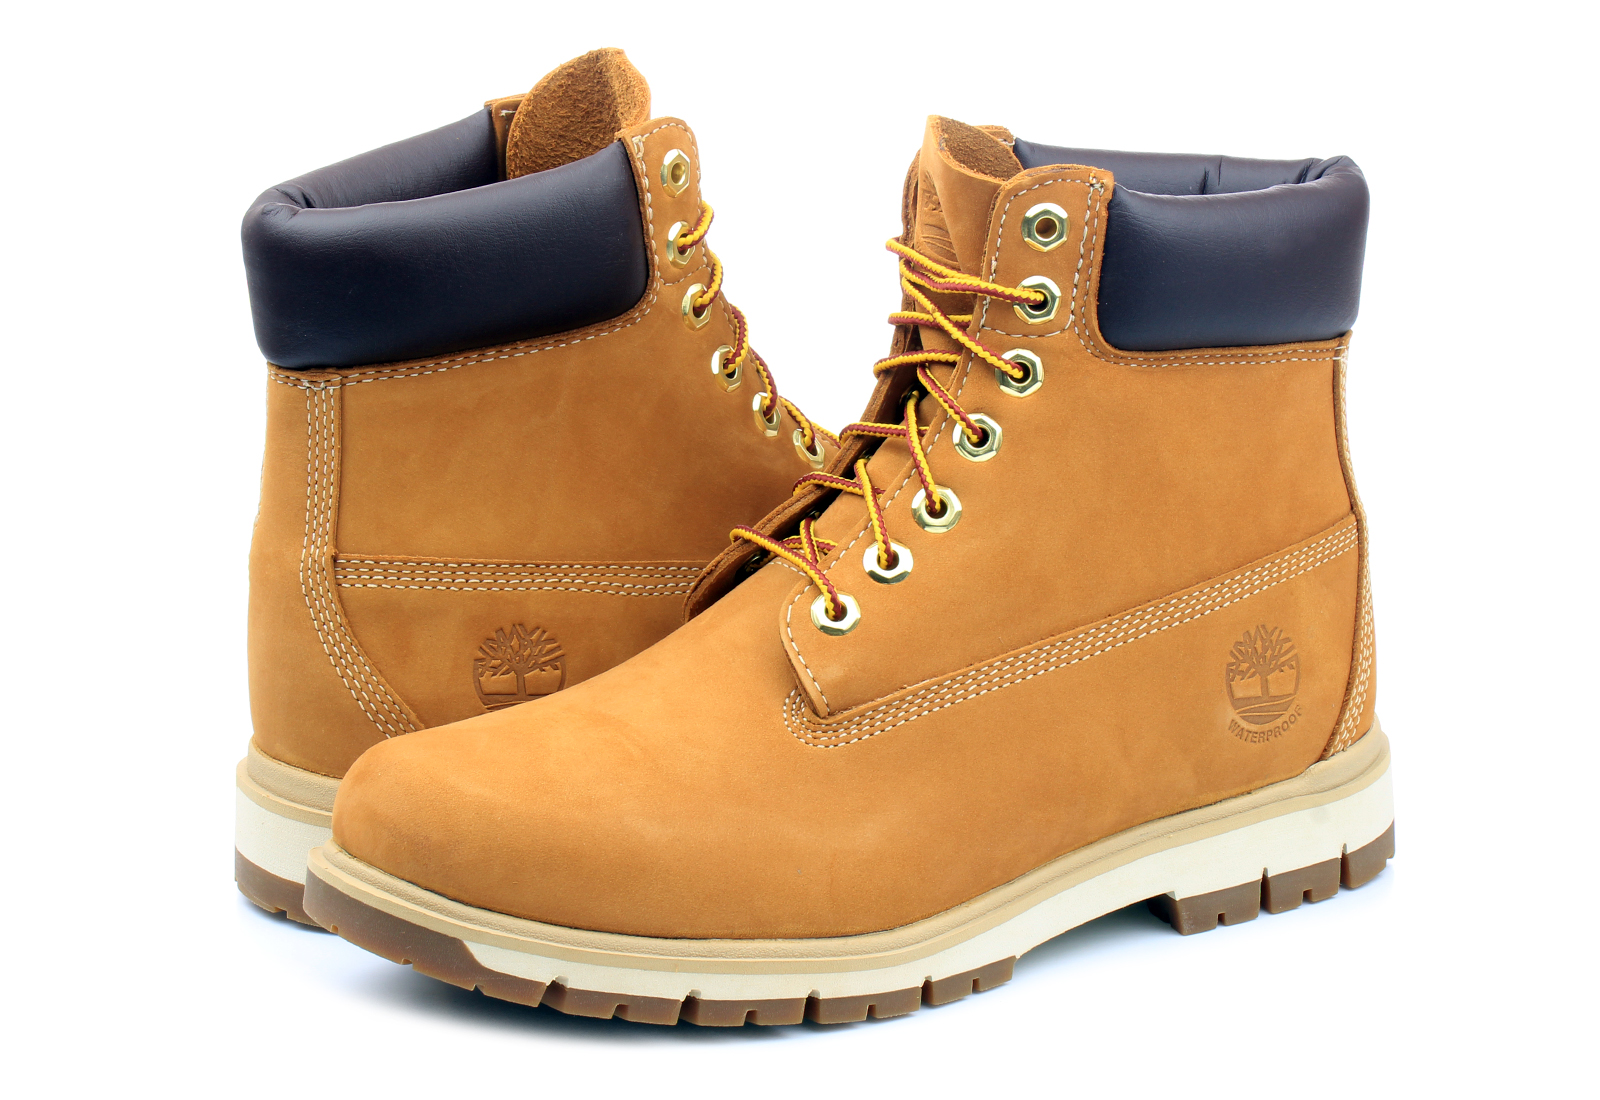 Timberland Boots Radford 6in Boot A1jhf Whe Online